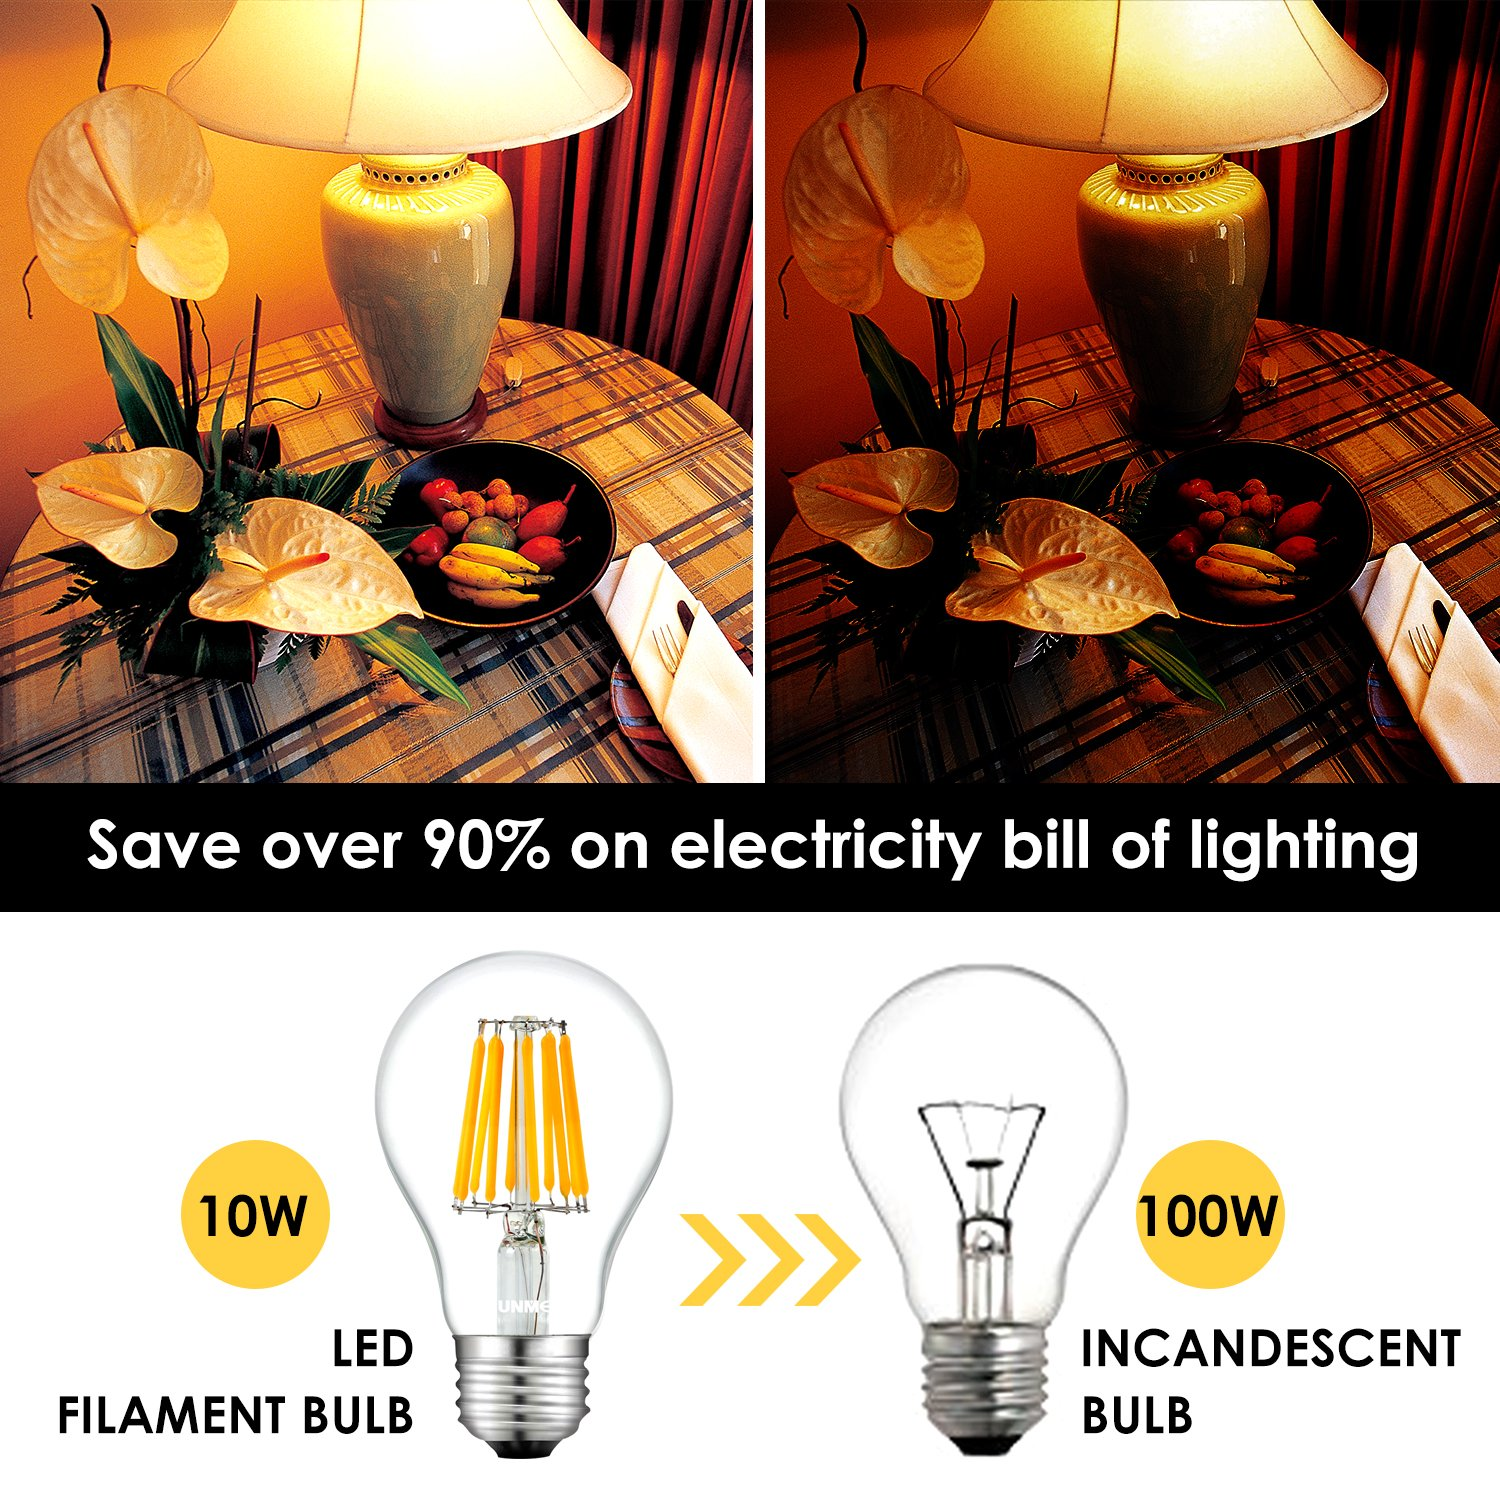 Sunmeg A19 Led Clear Edison Style Filament Replacement To 100w Light Dimmer Circuit Electronic Circuits Incandescent Bulbs 1000 Lumens E26 Medium Base Bulb Warm White 2700k 120vac